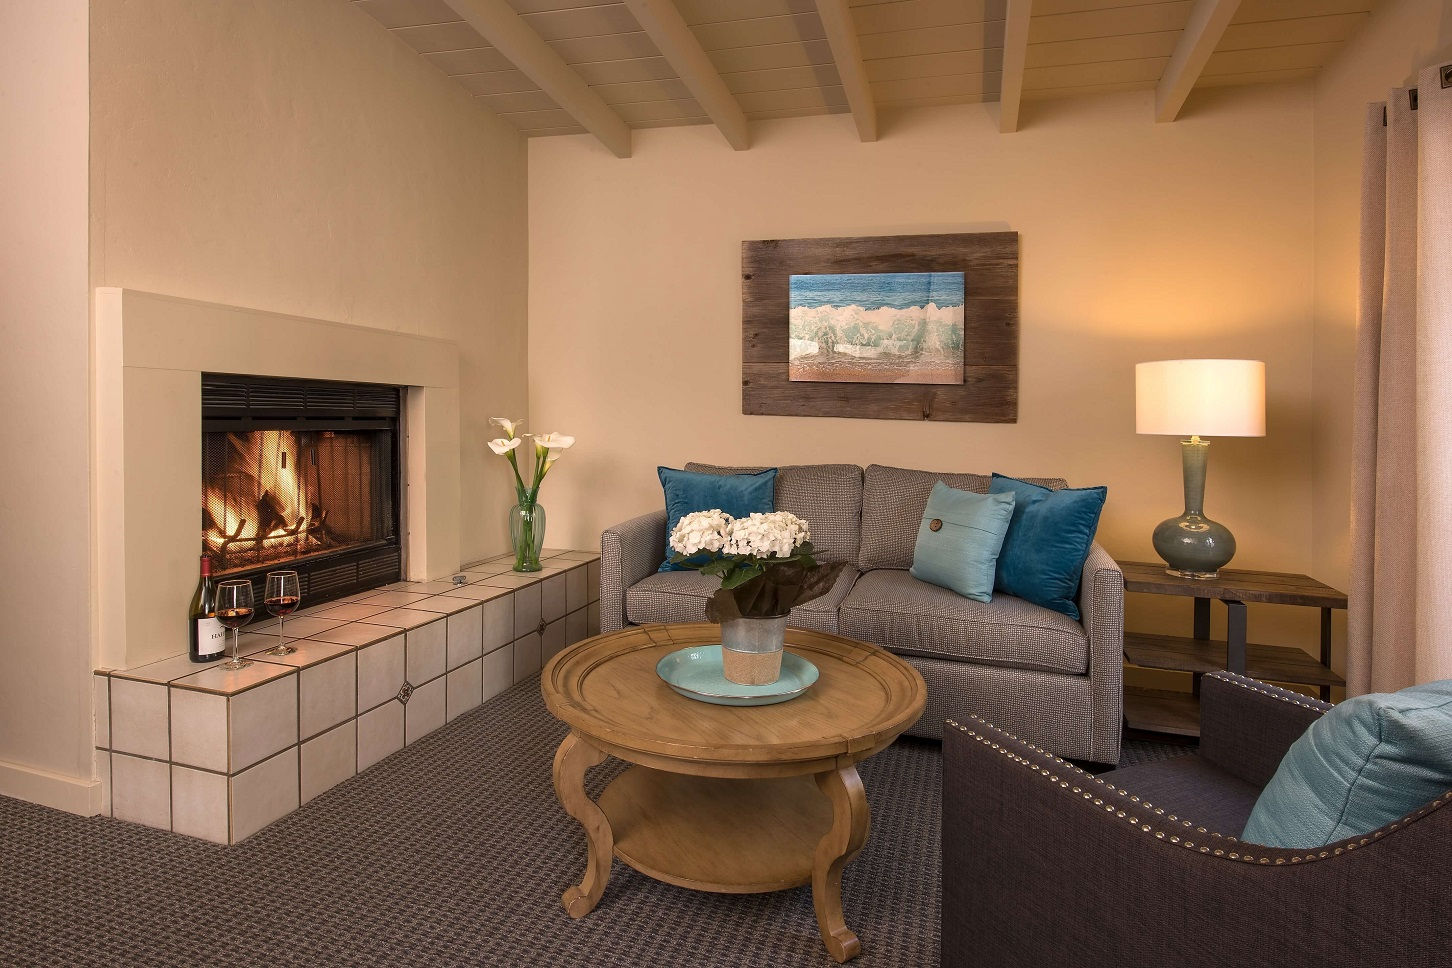 Room seating area with couch, chair, and fireplace